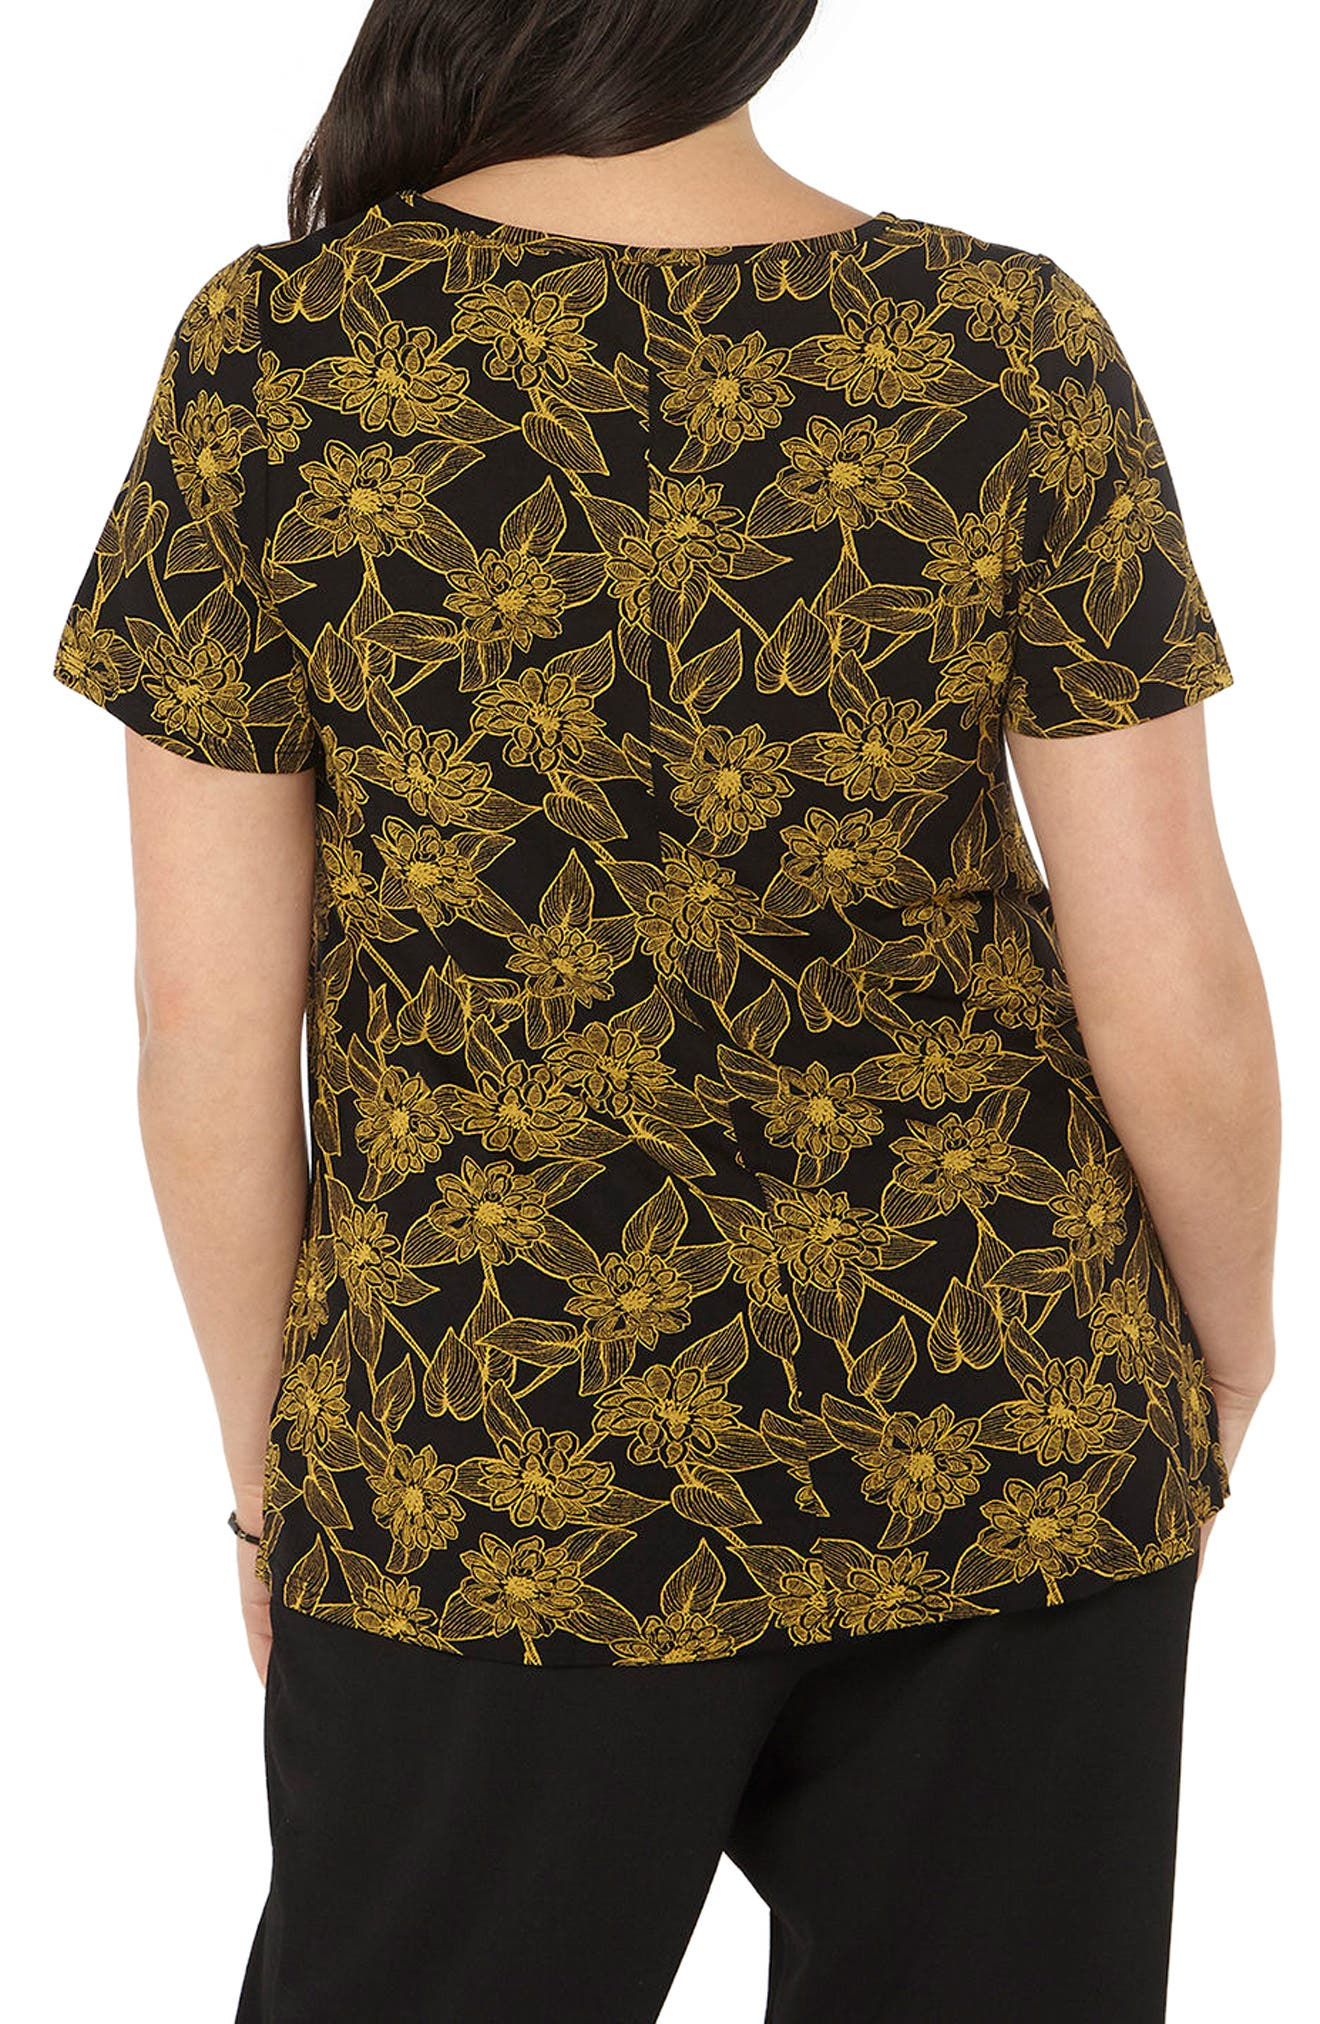 Floral Print Top,                             Alternate thumbnail 2, color,                             Yellow